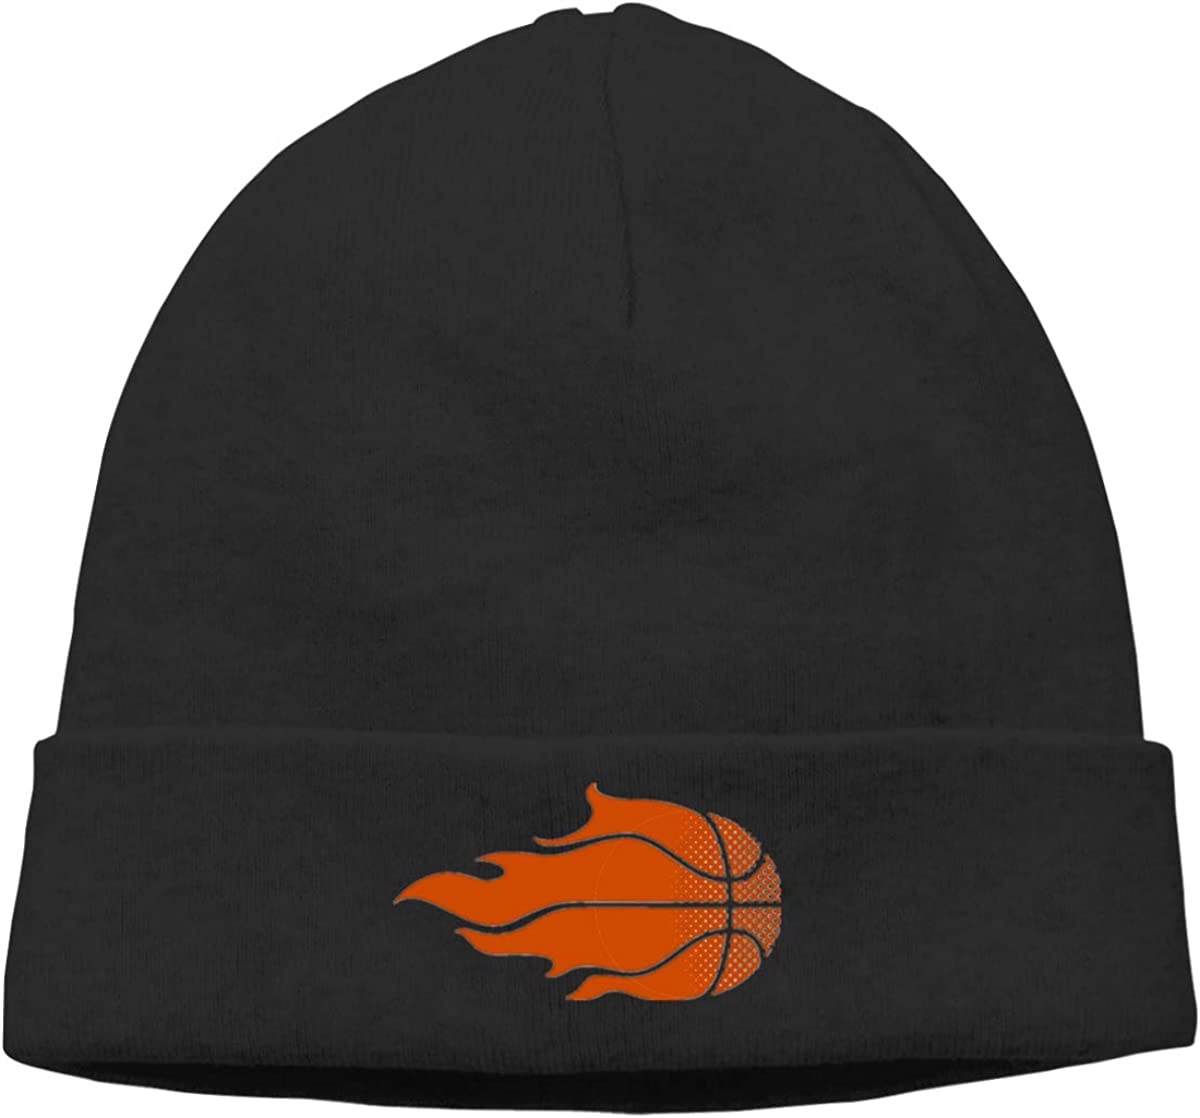 Nskngr Flame Basketball Cap Mens/&Womens Serious Style Beanie Hats Knit Cap Skully